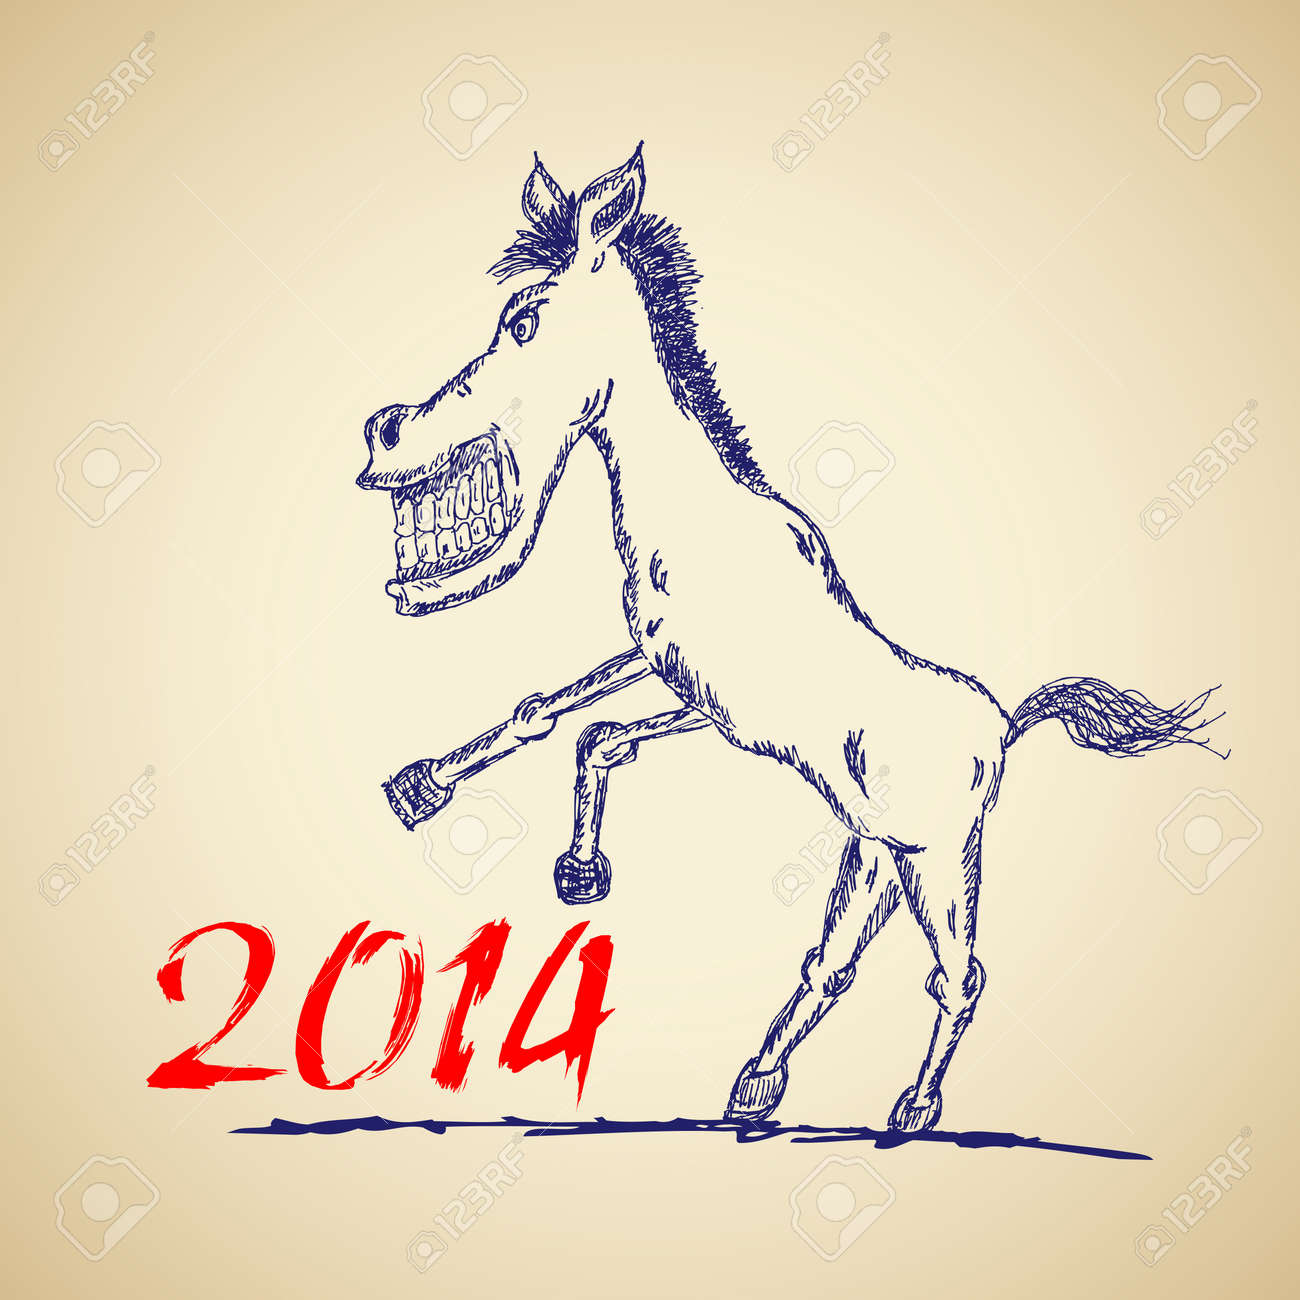 Funny Horse Sketch For Your Design Vector Illustration Eps10 Royalty Free Cliparts Vectors And Stock Illustration Image 23474019